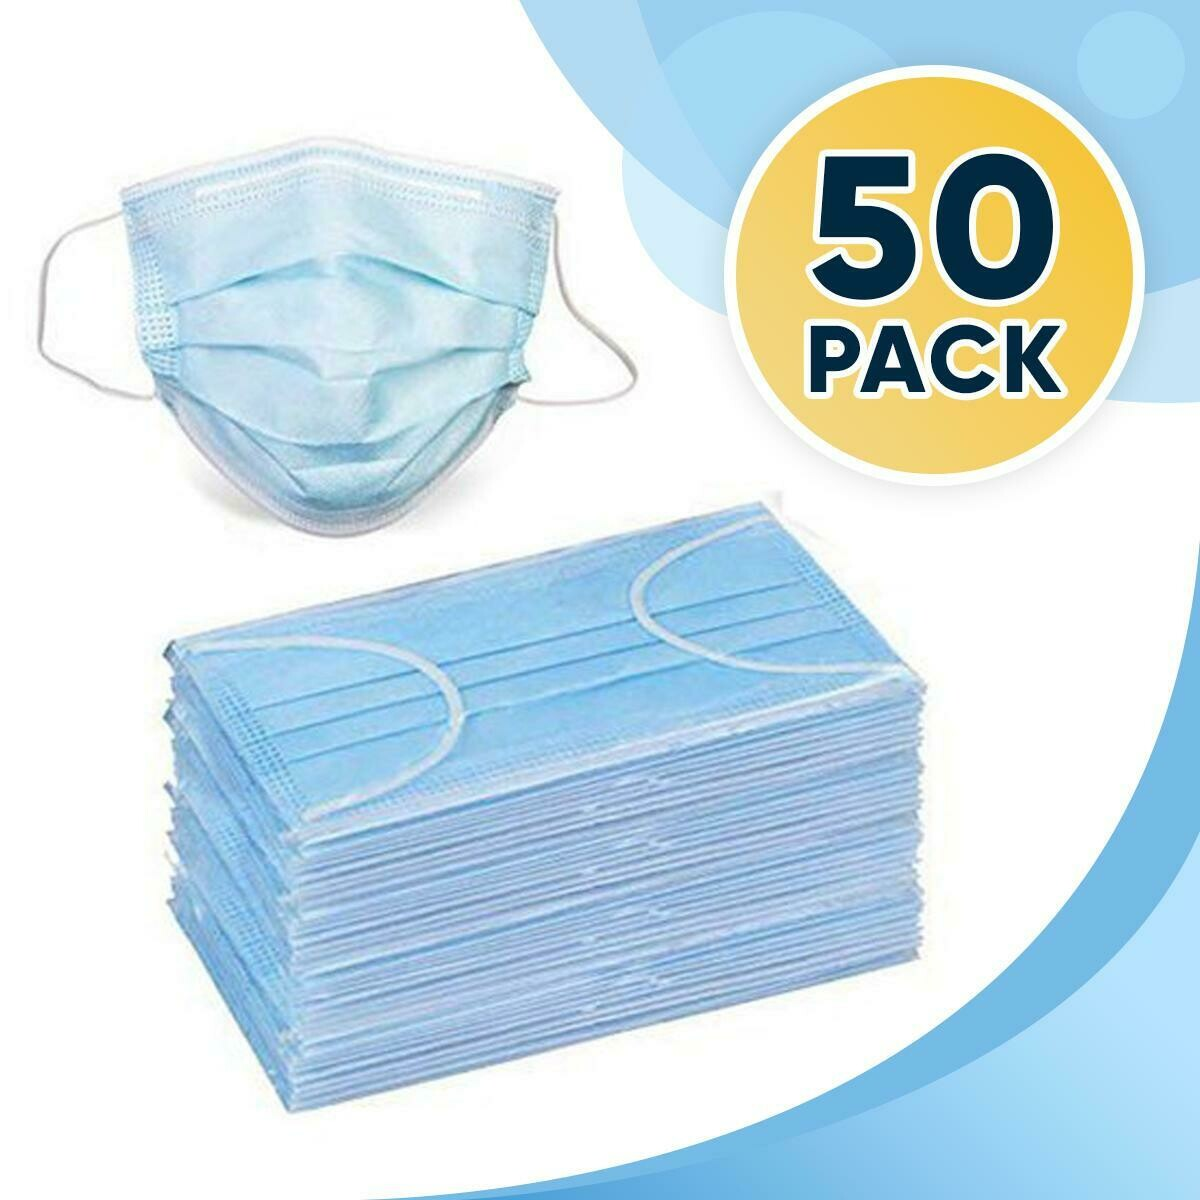 Disposable Surgical Face Mask (50-pack)